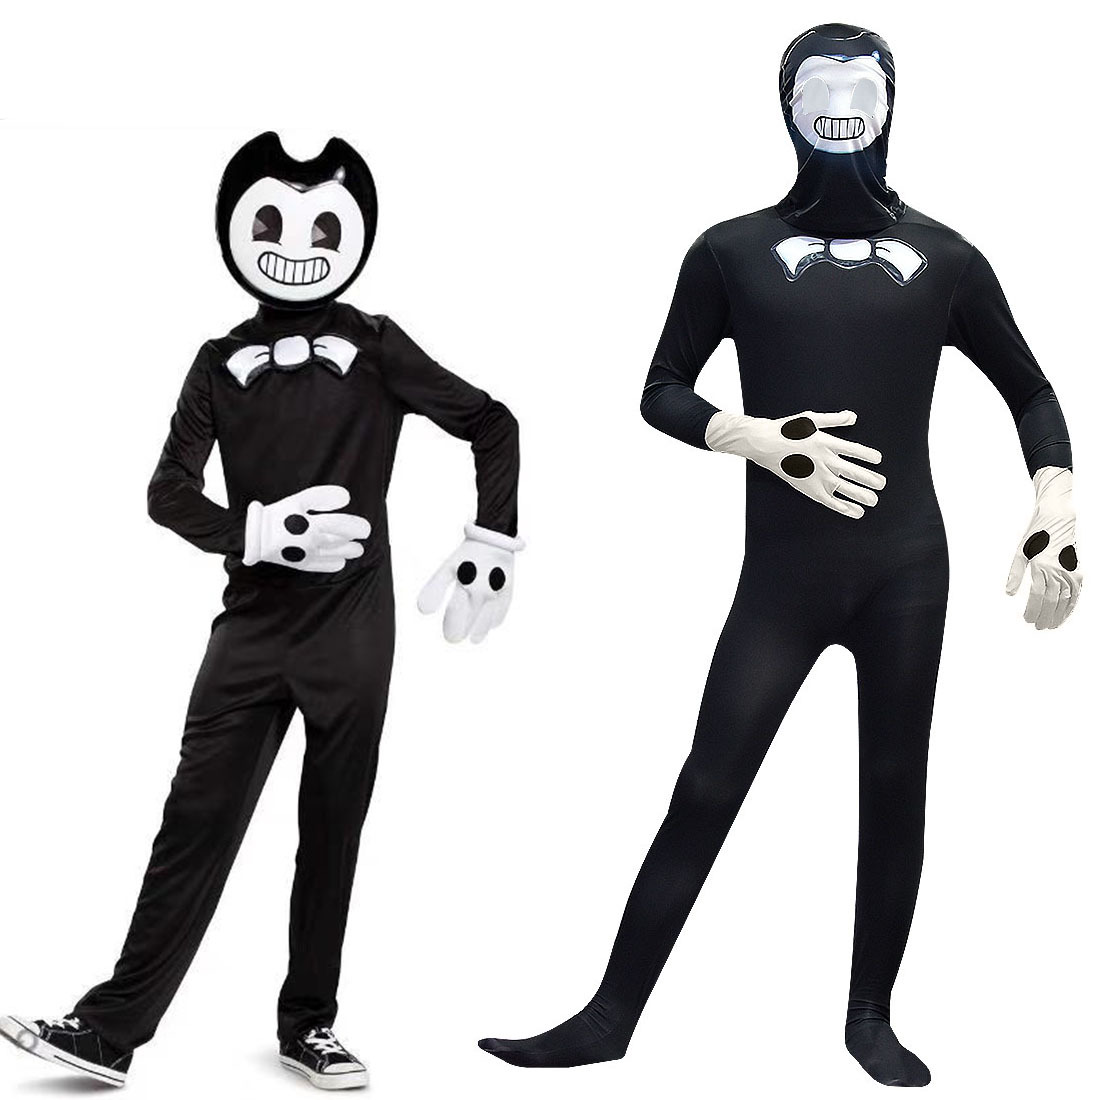 Kids Halloween Bendy And The Ink Machine Jumpsuit+Mask Costumes Teen Boys Fashion Party Cosplay Children Clothing Sets C46600CH